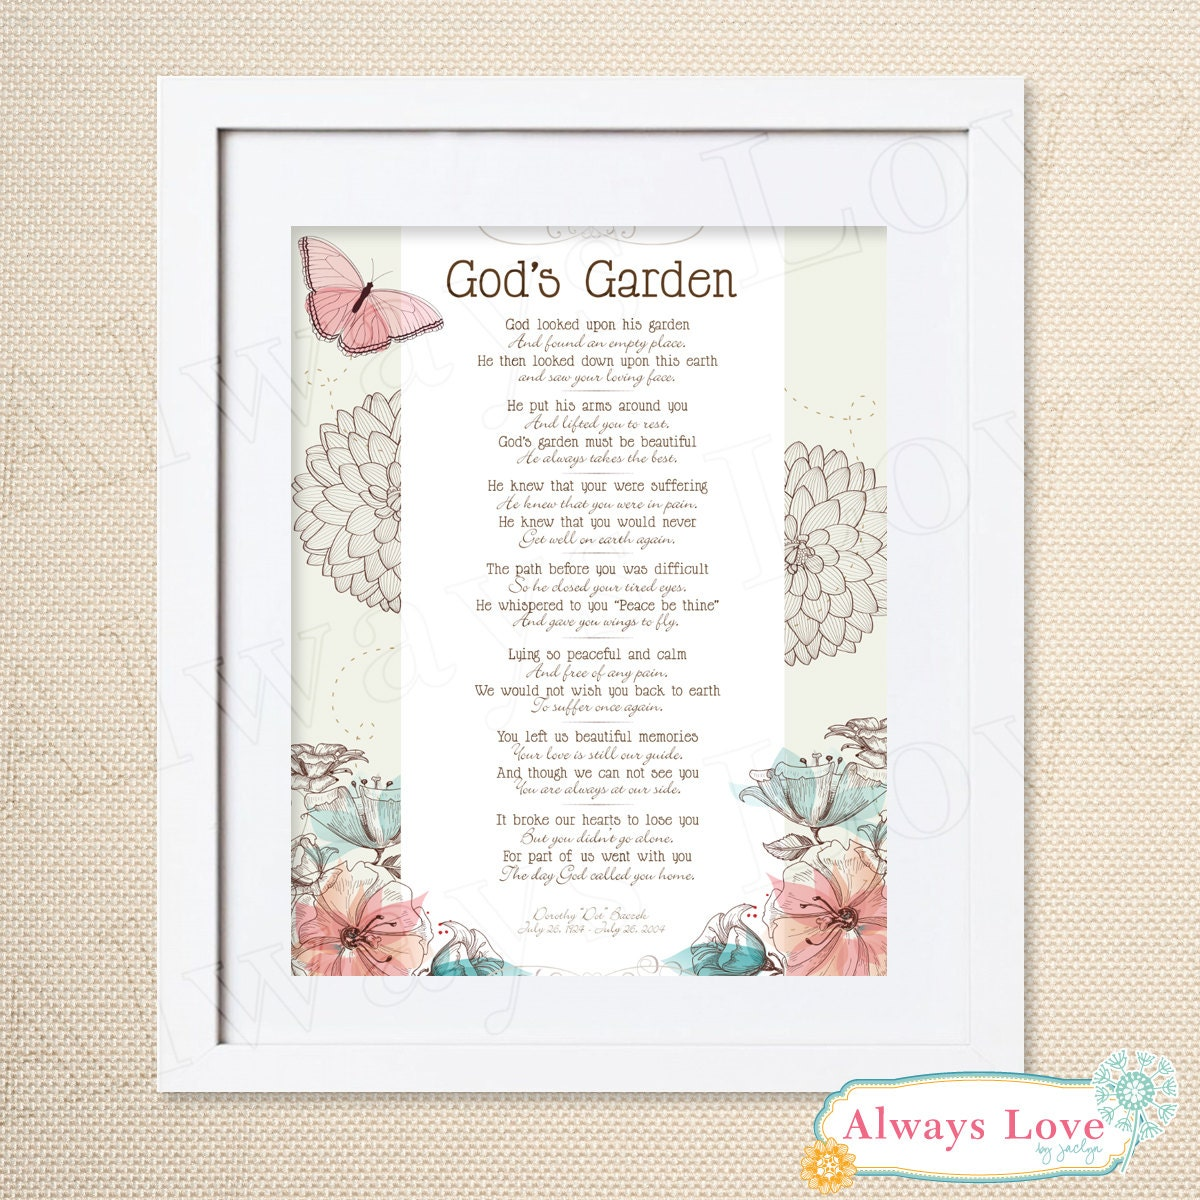 Gods Garden Poem In Memory of Loved One Wall Hanging Wall